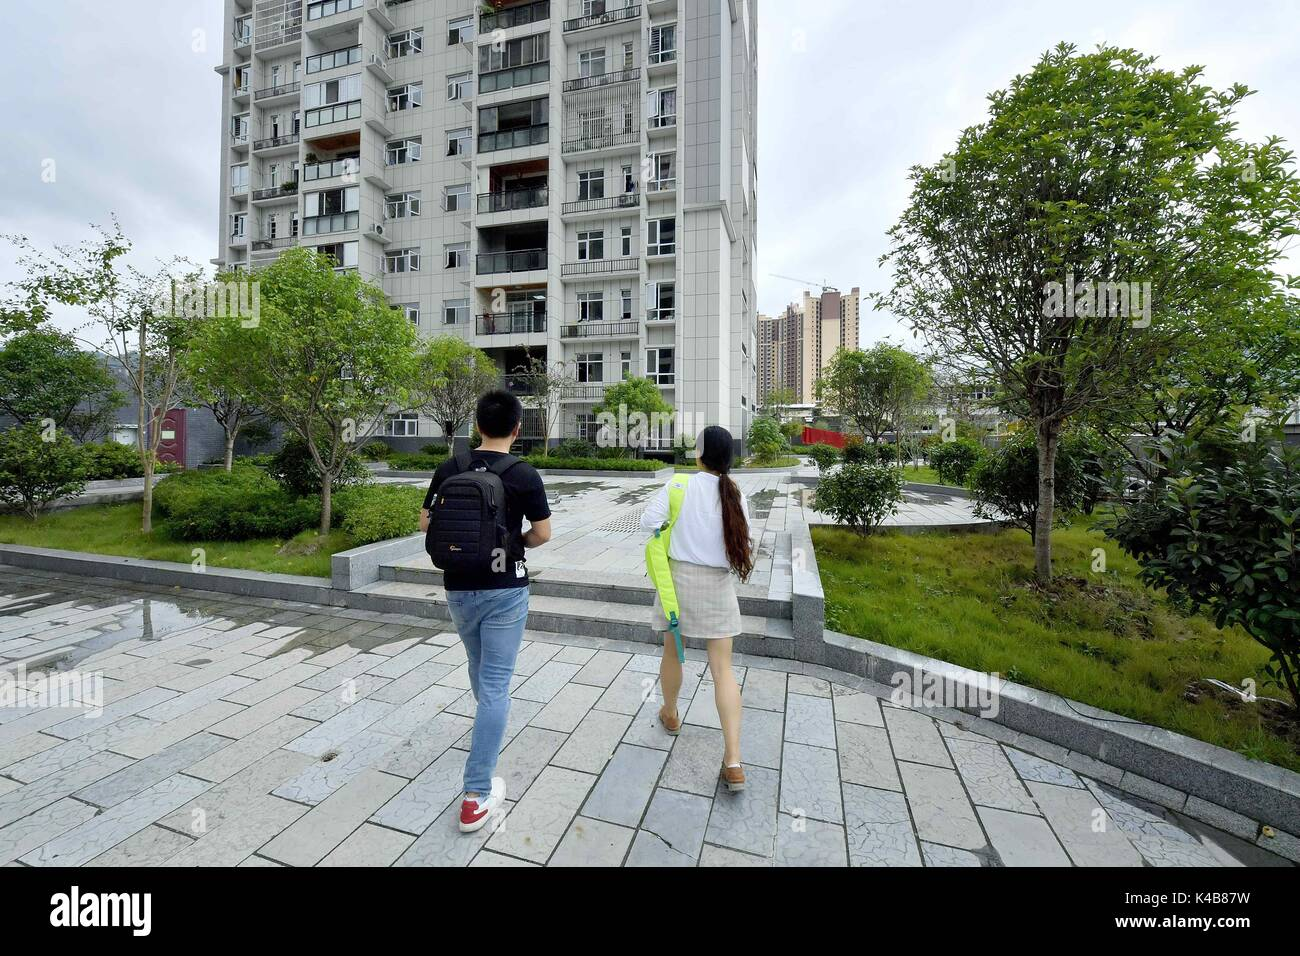 Enshi. 5th Sep, 2017. People walk back to the apartments built for young talent in Xuan'en County of central China's Hubei Province, Sept. 5, 2017. 'Apartment for talents', apartment designed to attract talents to contribute to local development, has appeared in Xuan'en County recently. Credit: Song Wen/Xinhua/Alamy Live News - Stock Image